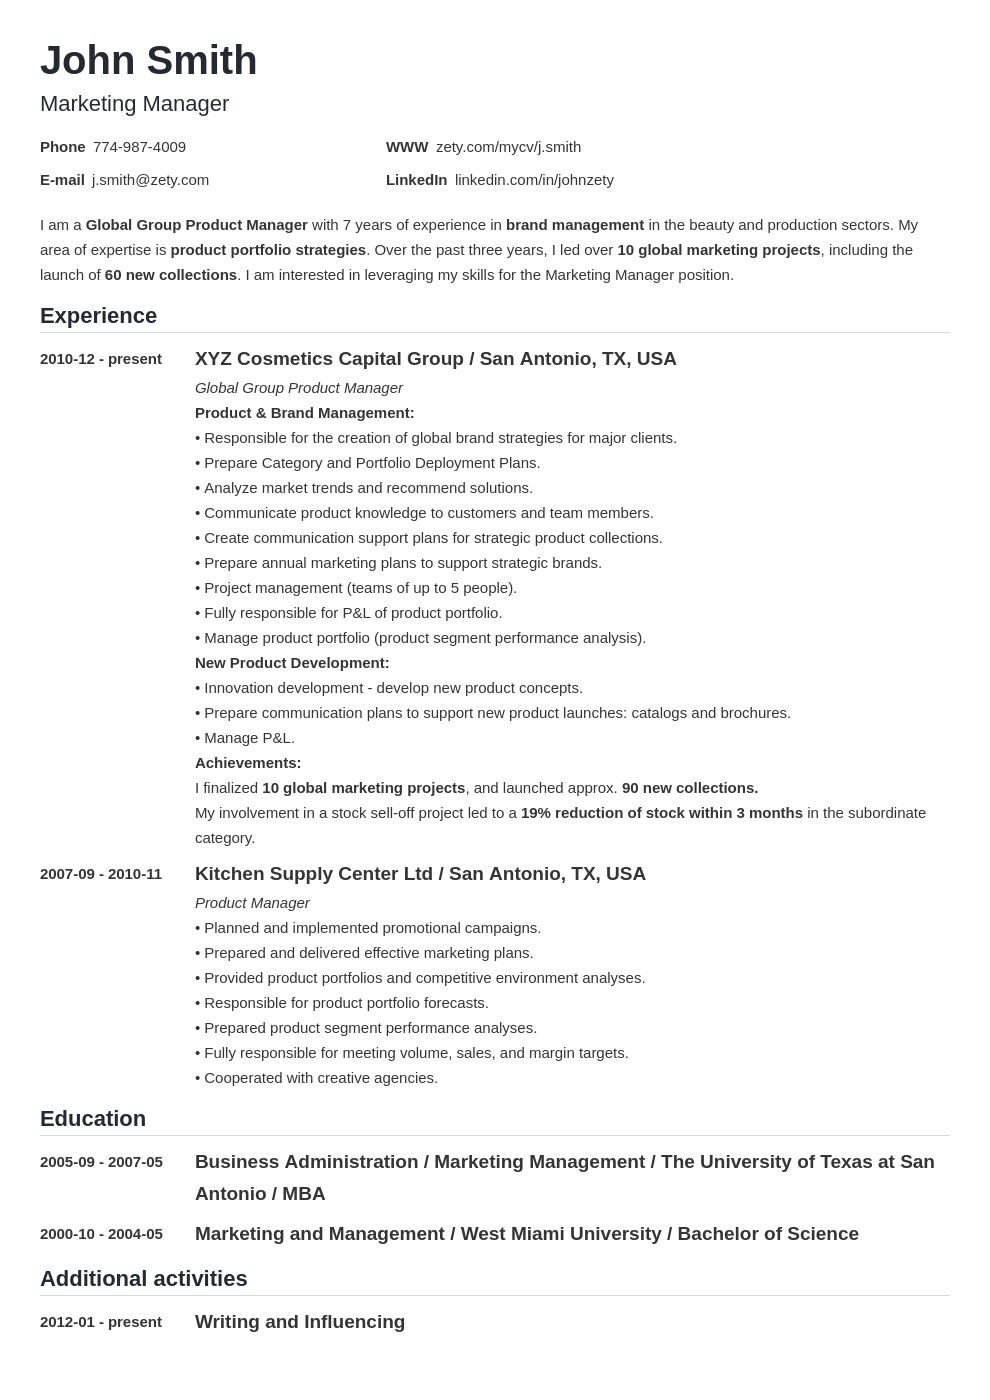 Education history on resume cover letter samples for student employment